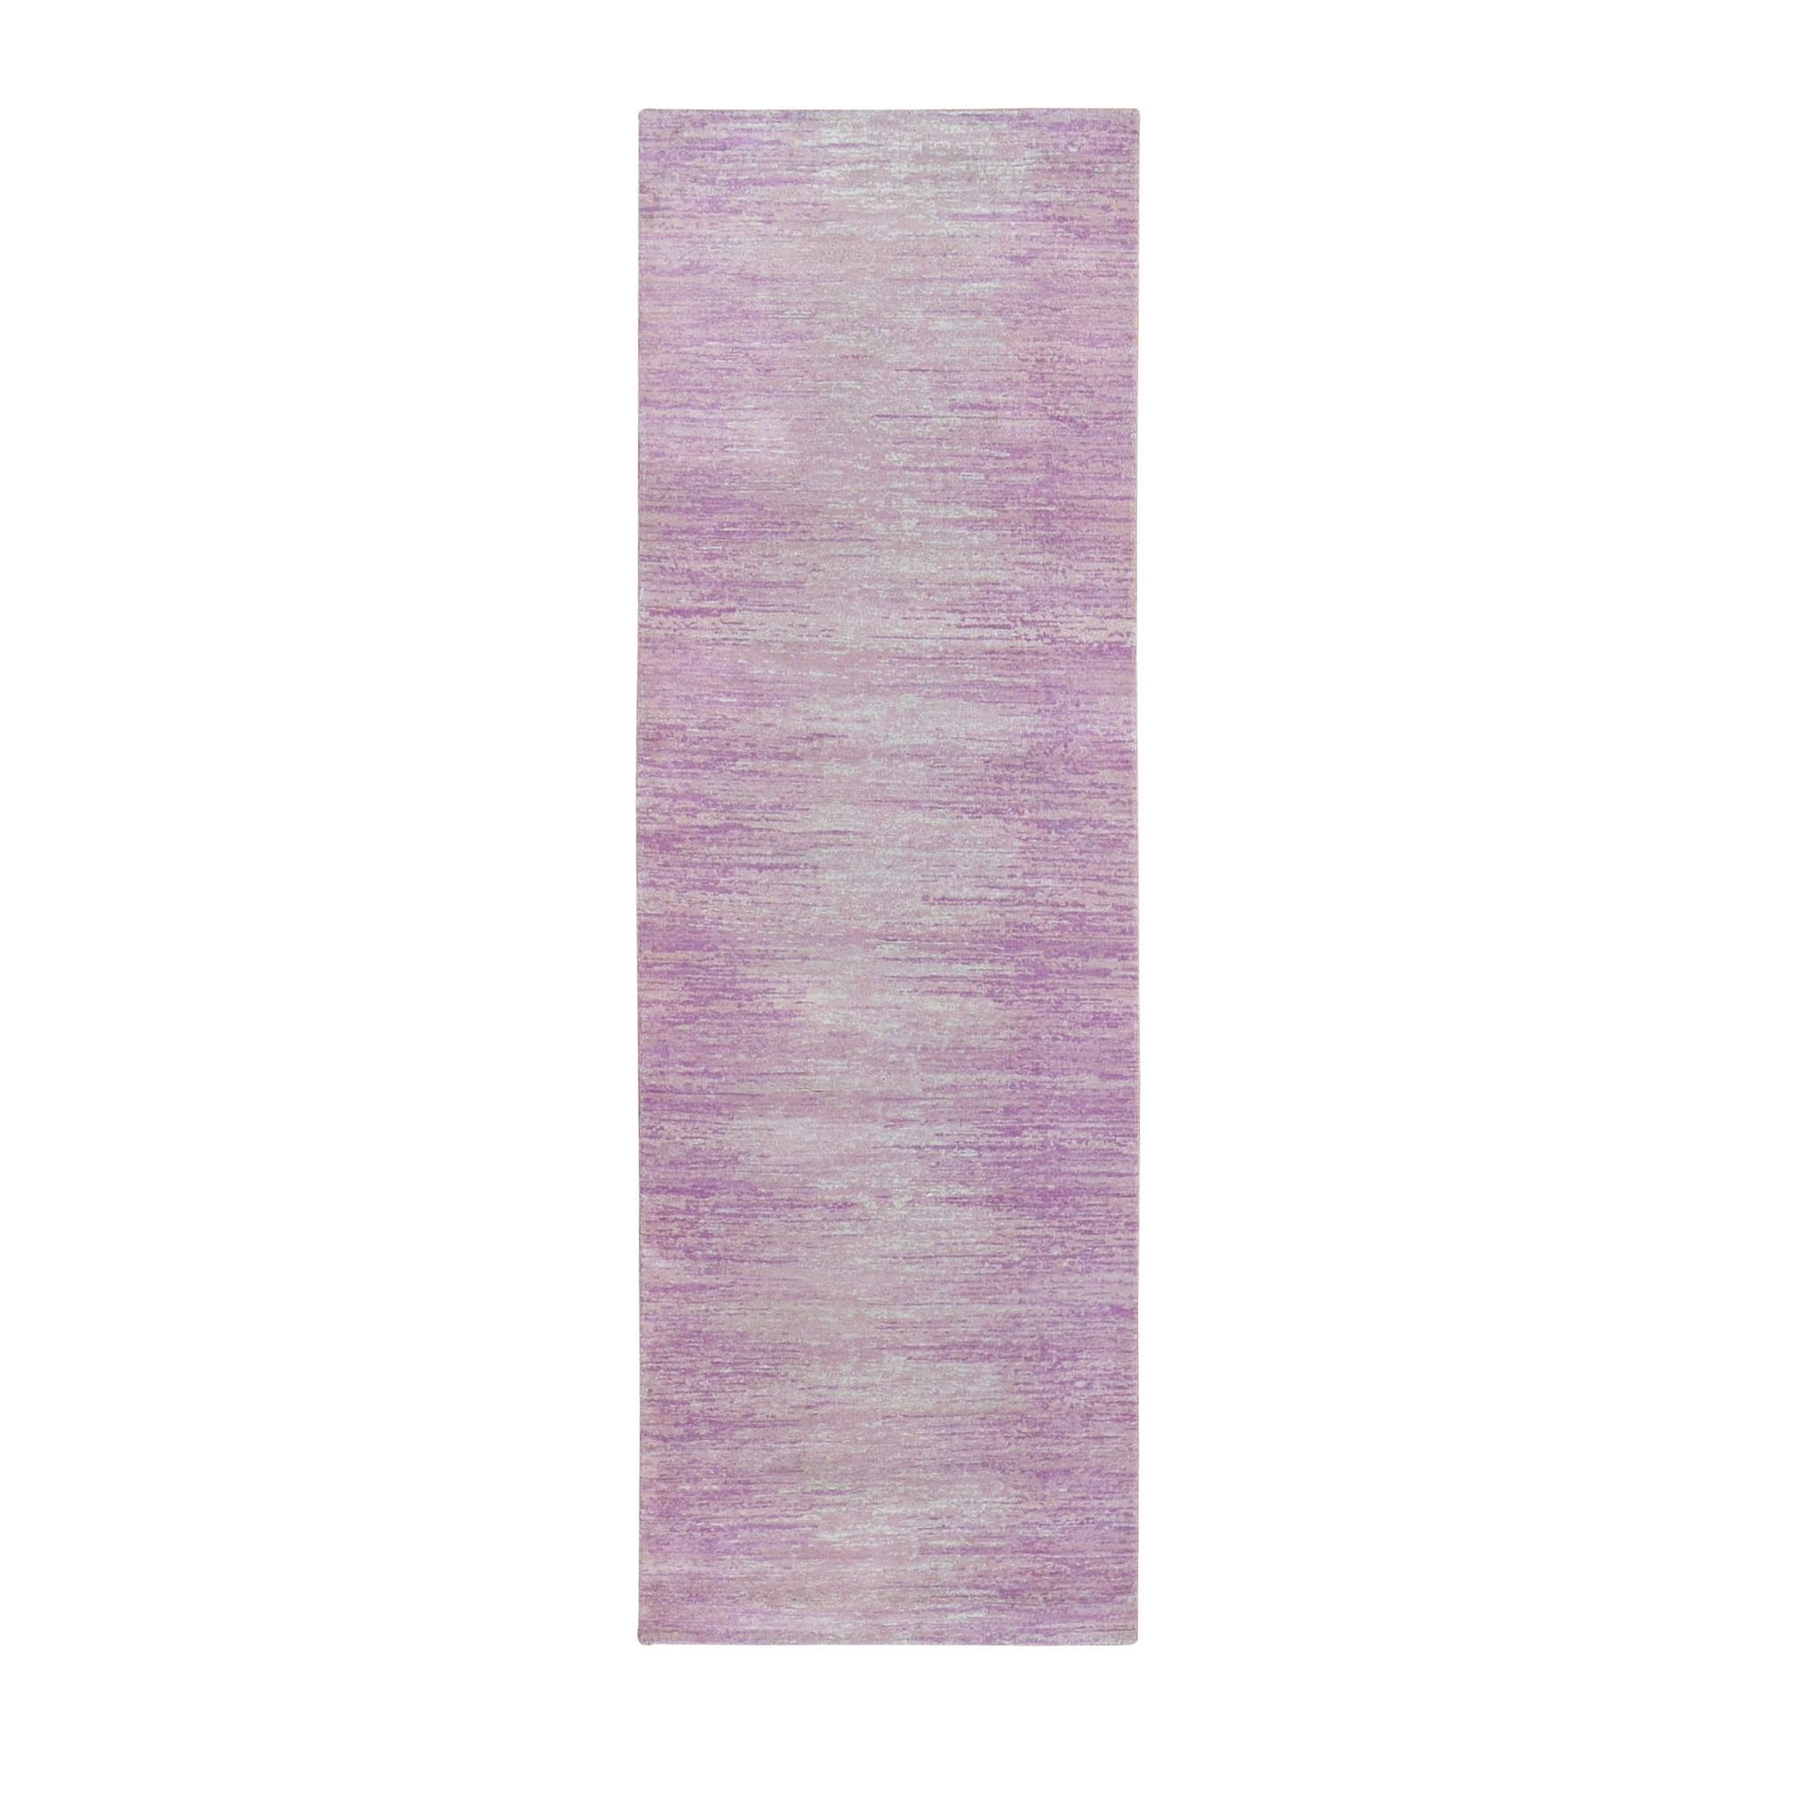 Mid Century Modern Collection Hand Knotted Pink Rug No: 1133520